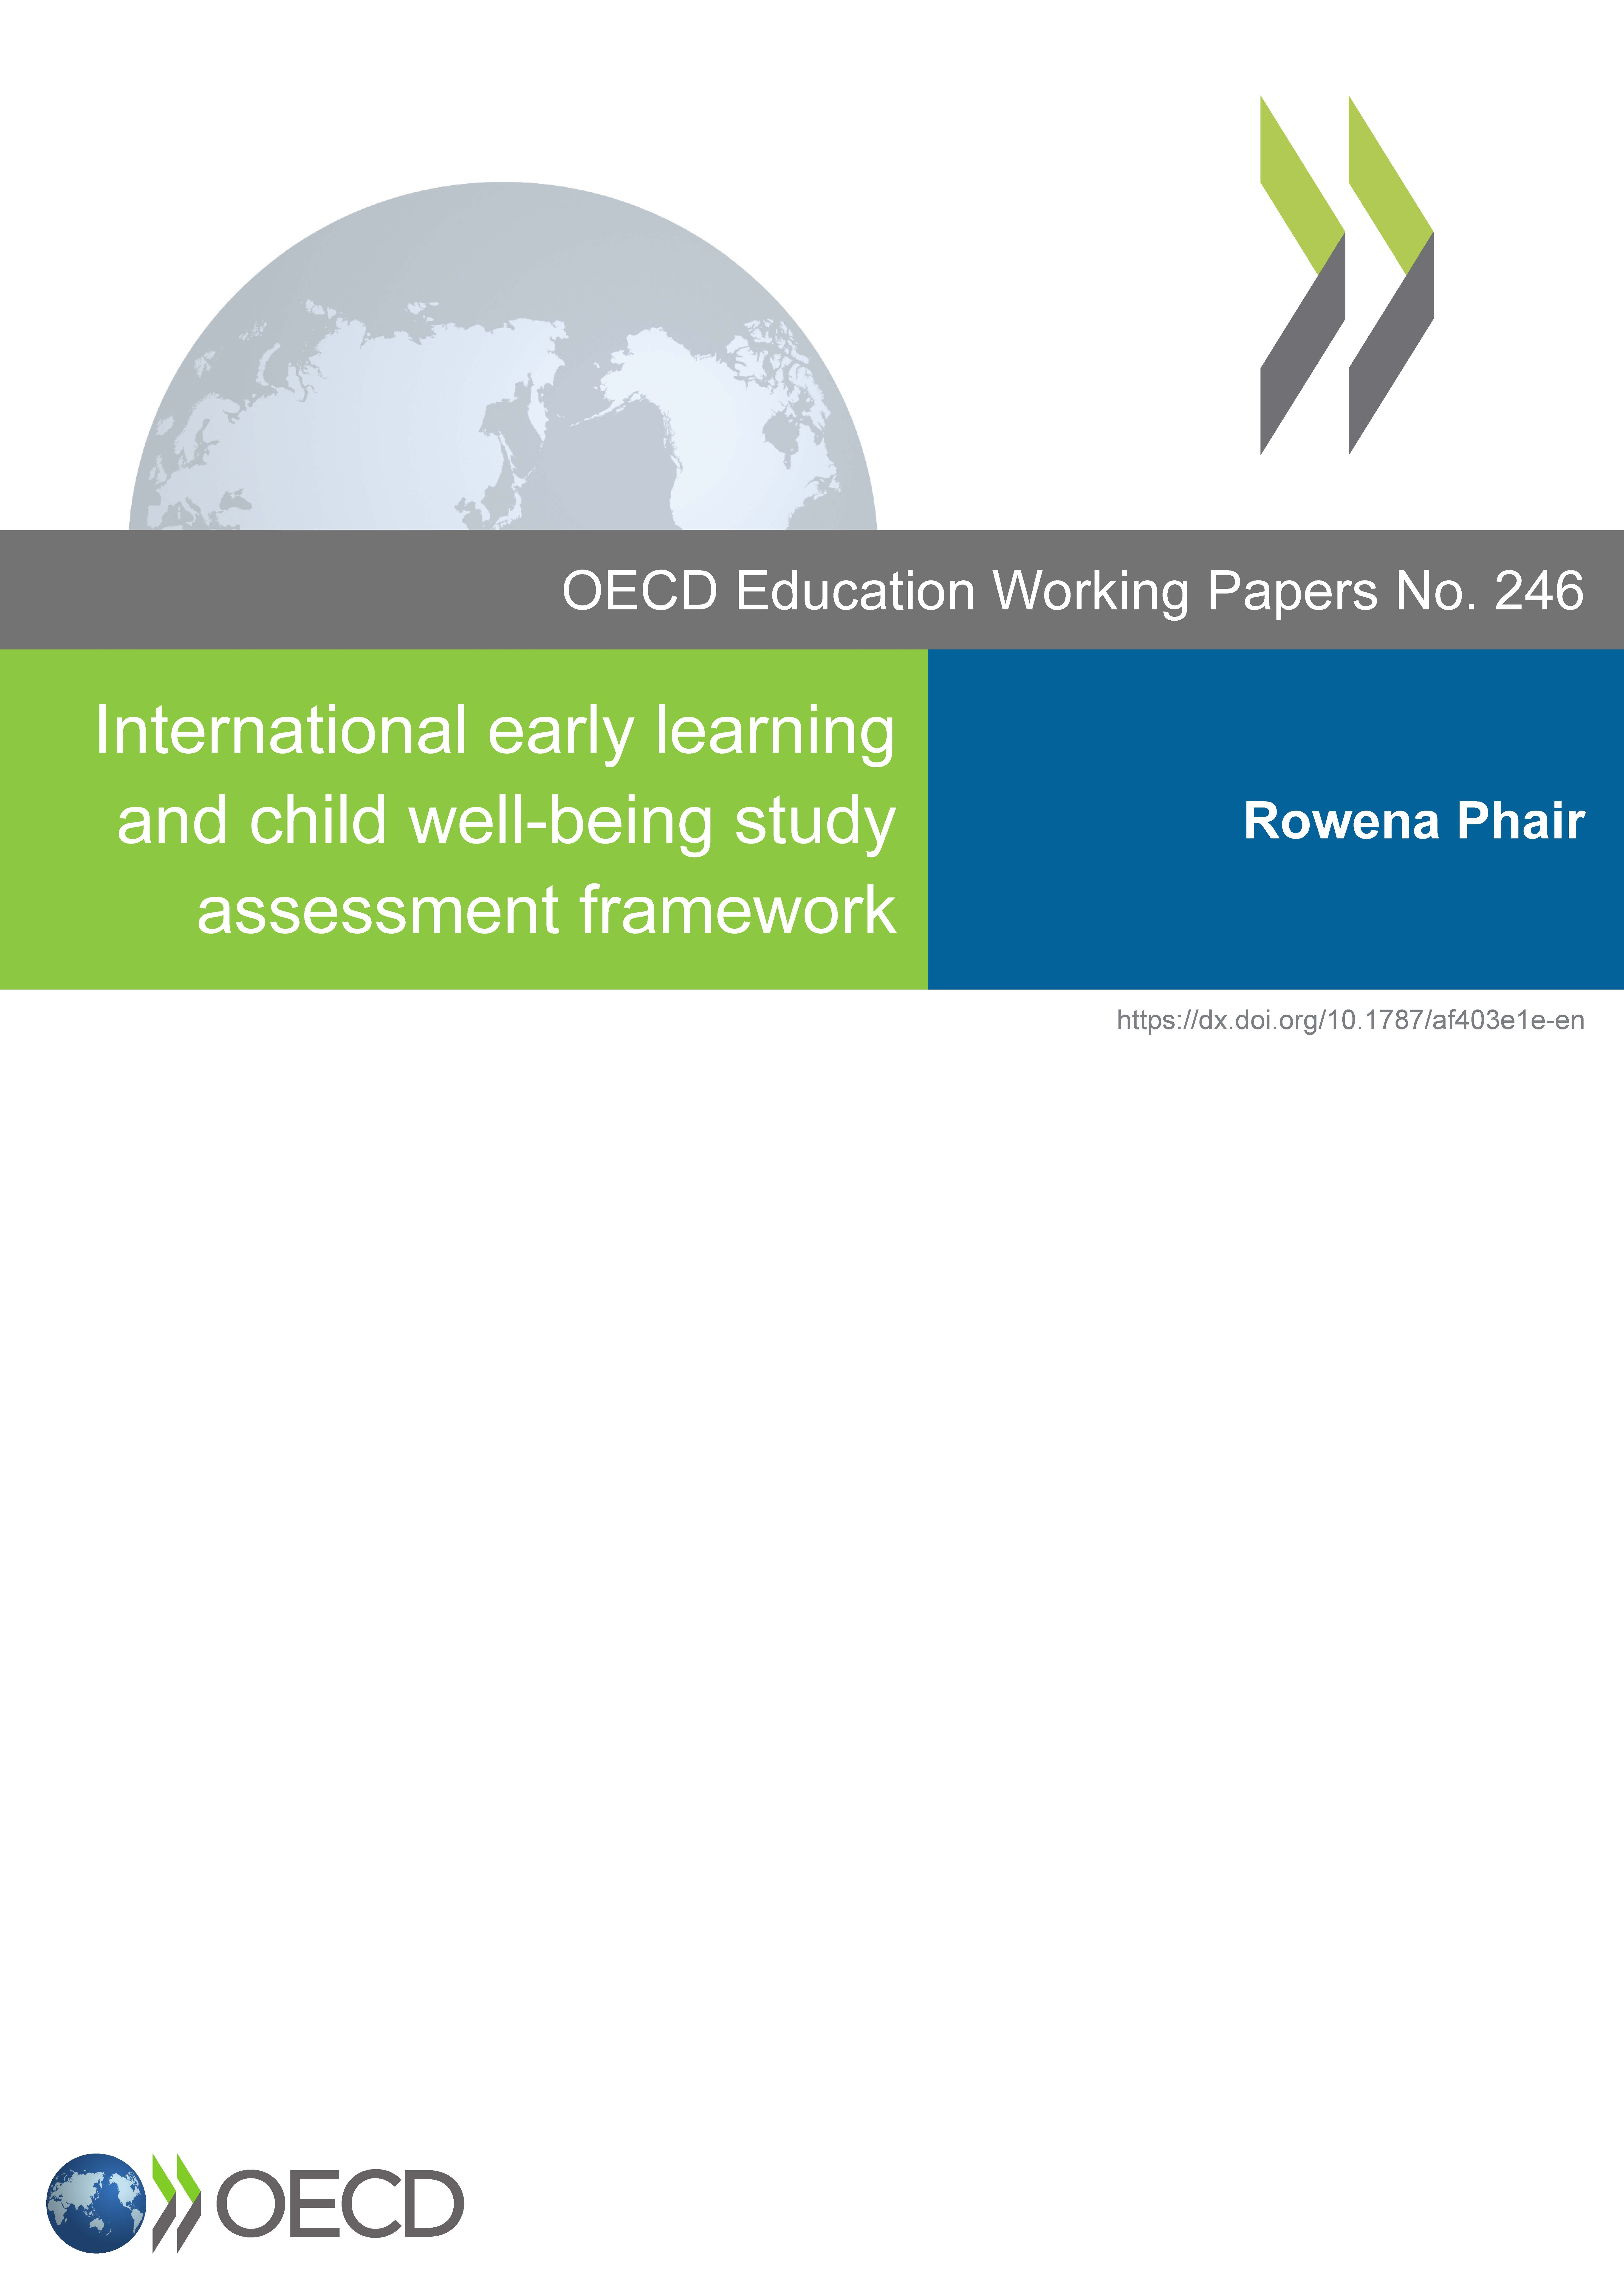 IELS – International early learning and child well-being study assessment framework (2021) – OECD